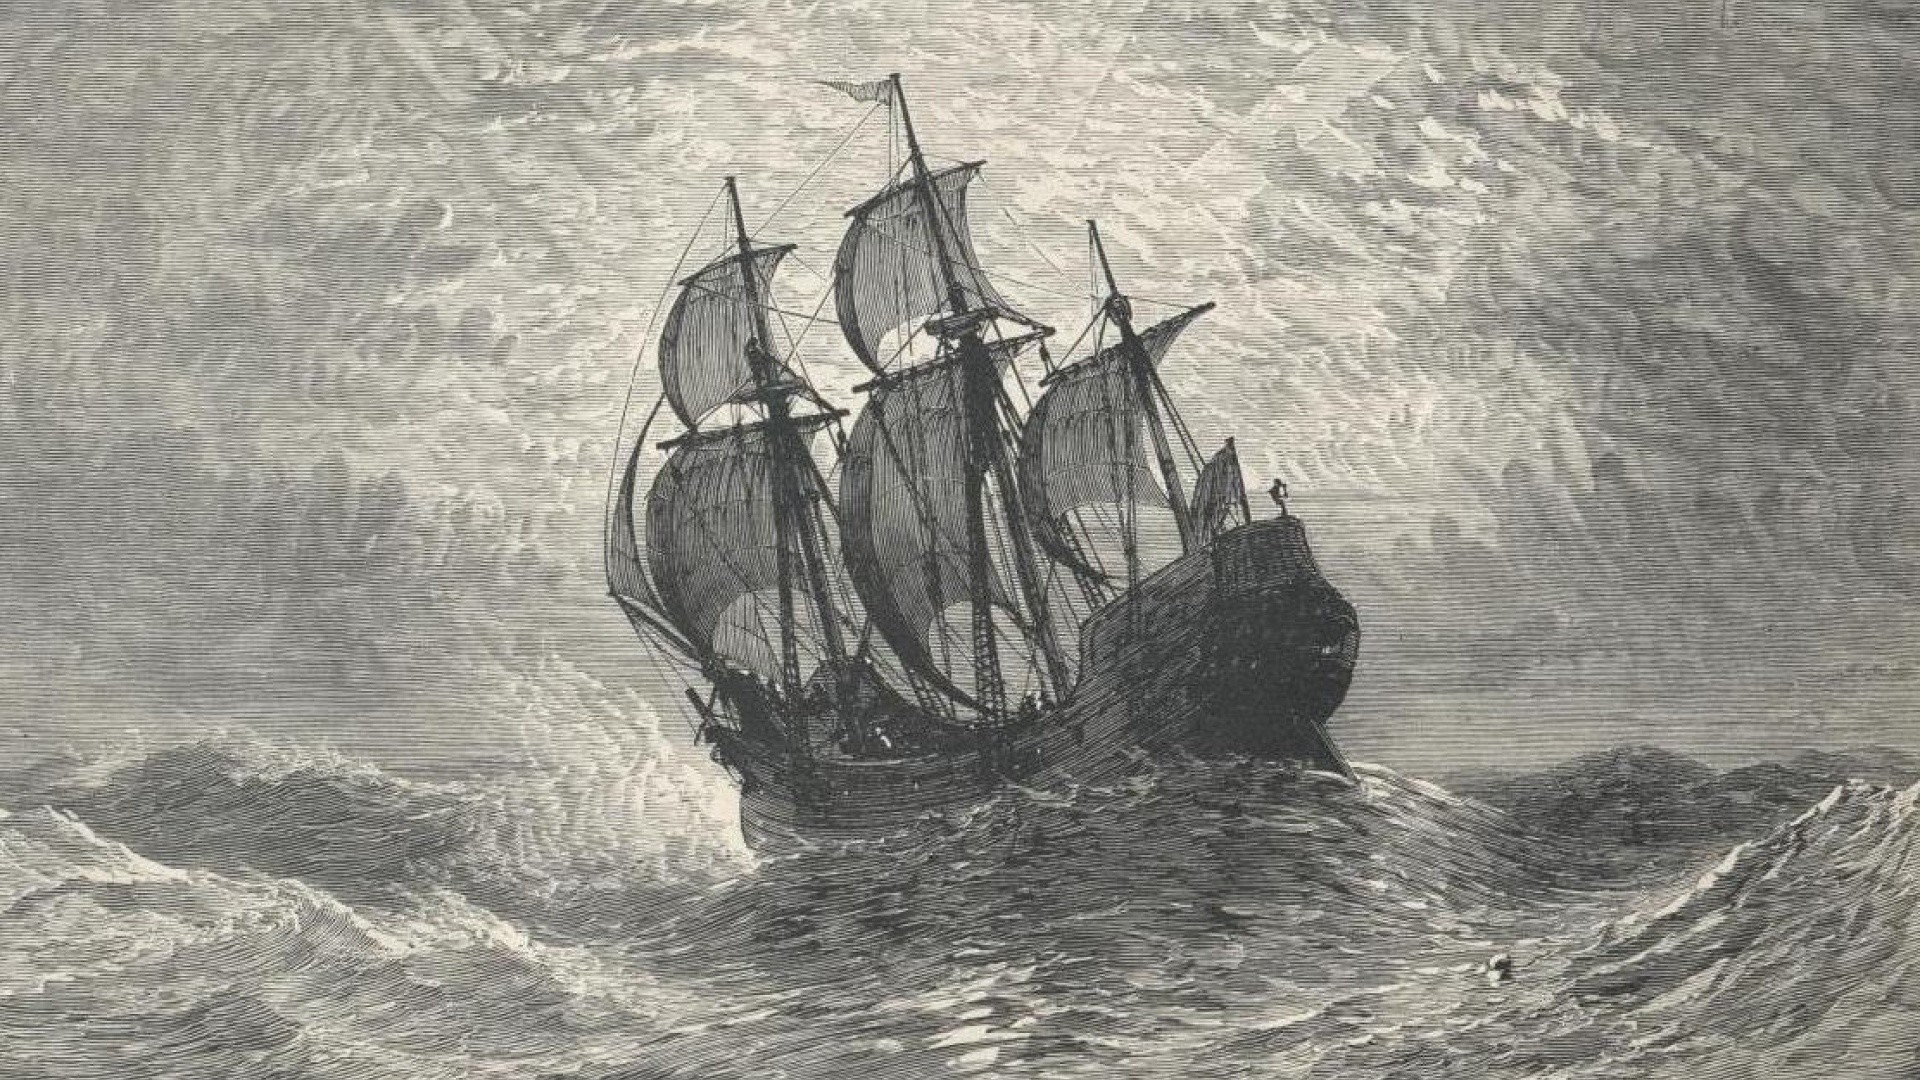 Stormy Ocean Ship Grayscale